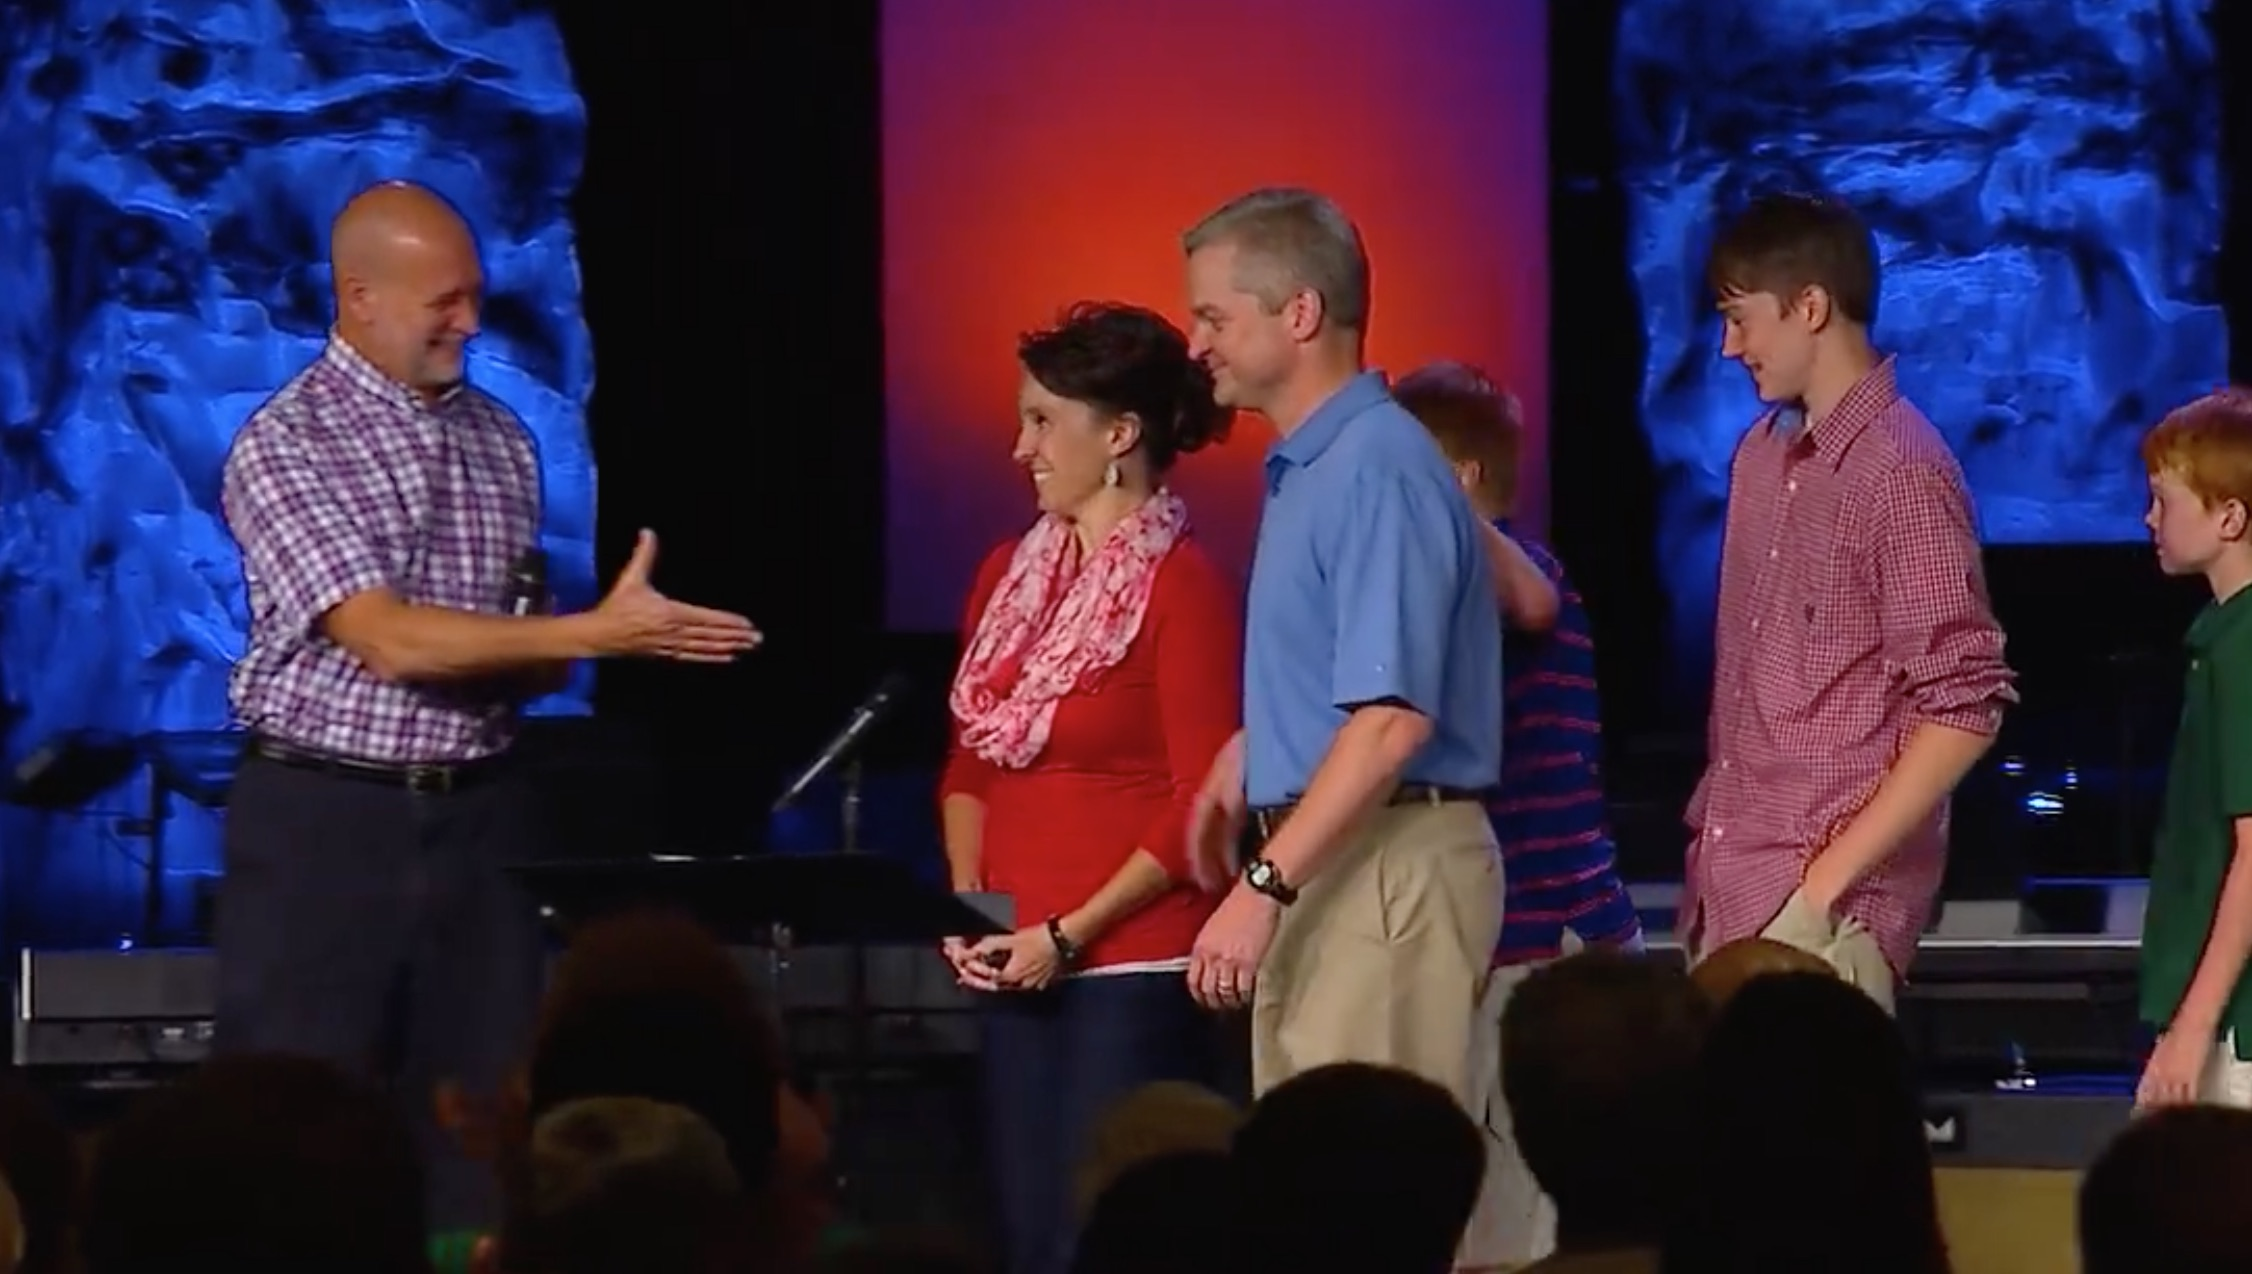 brian frost approved unanimously as new pastor of providence